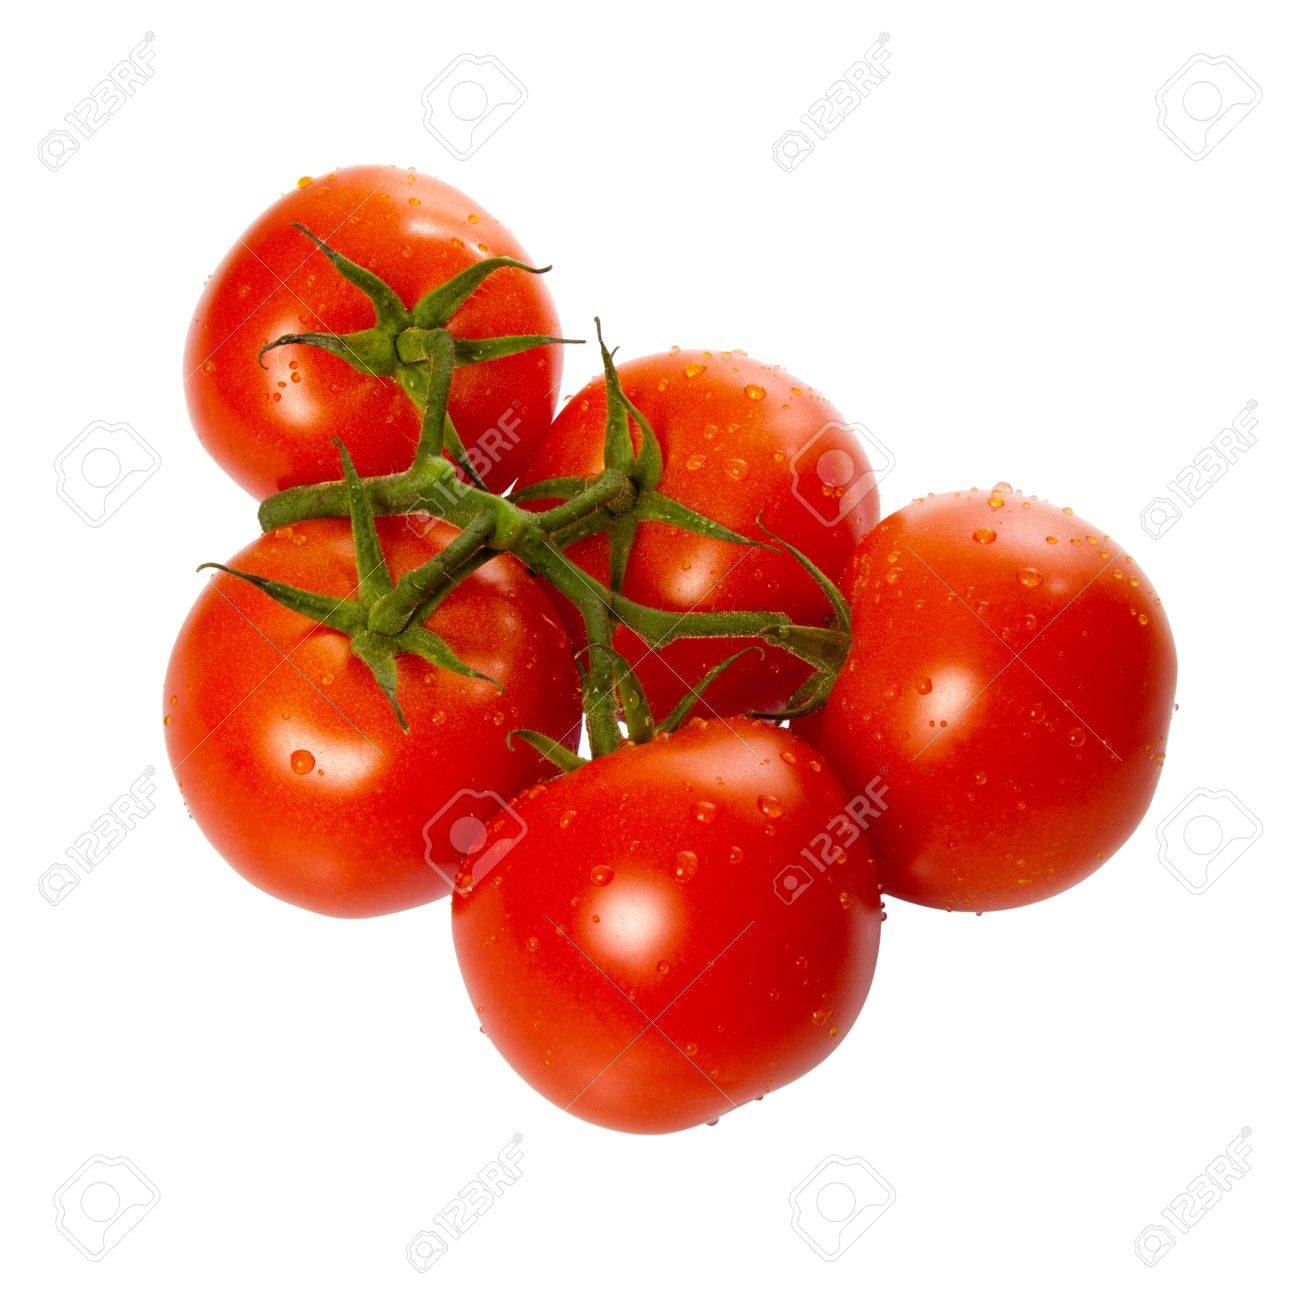 Ripe Trusse Tomatoes isolated over white background Stock Photo - 7118915